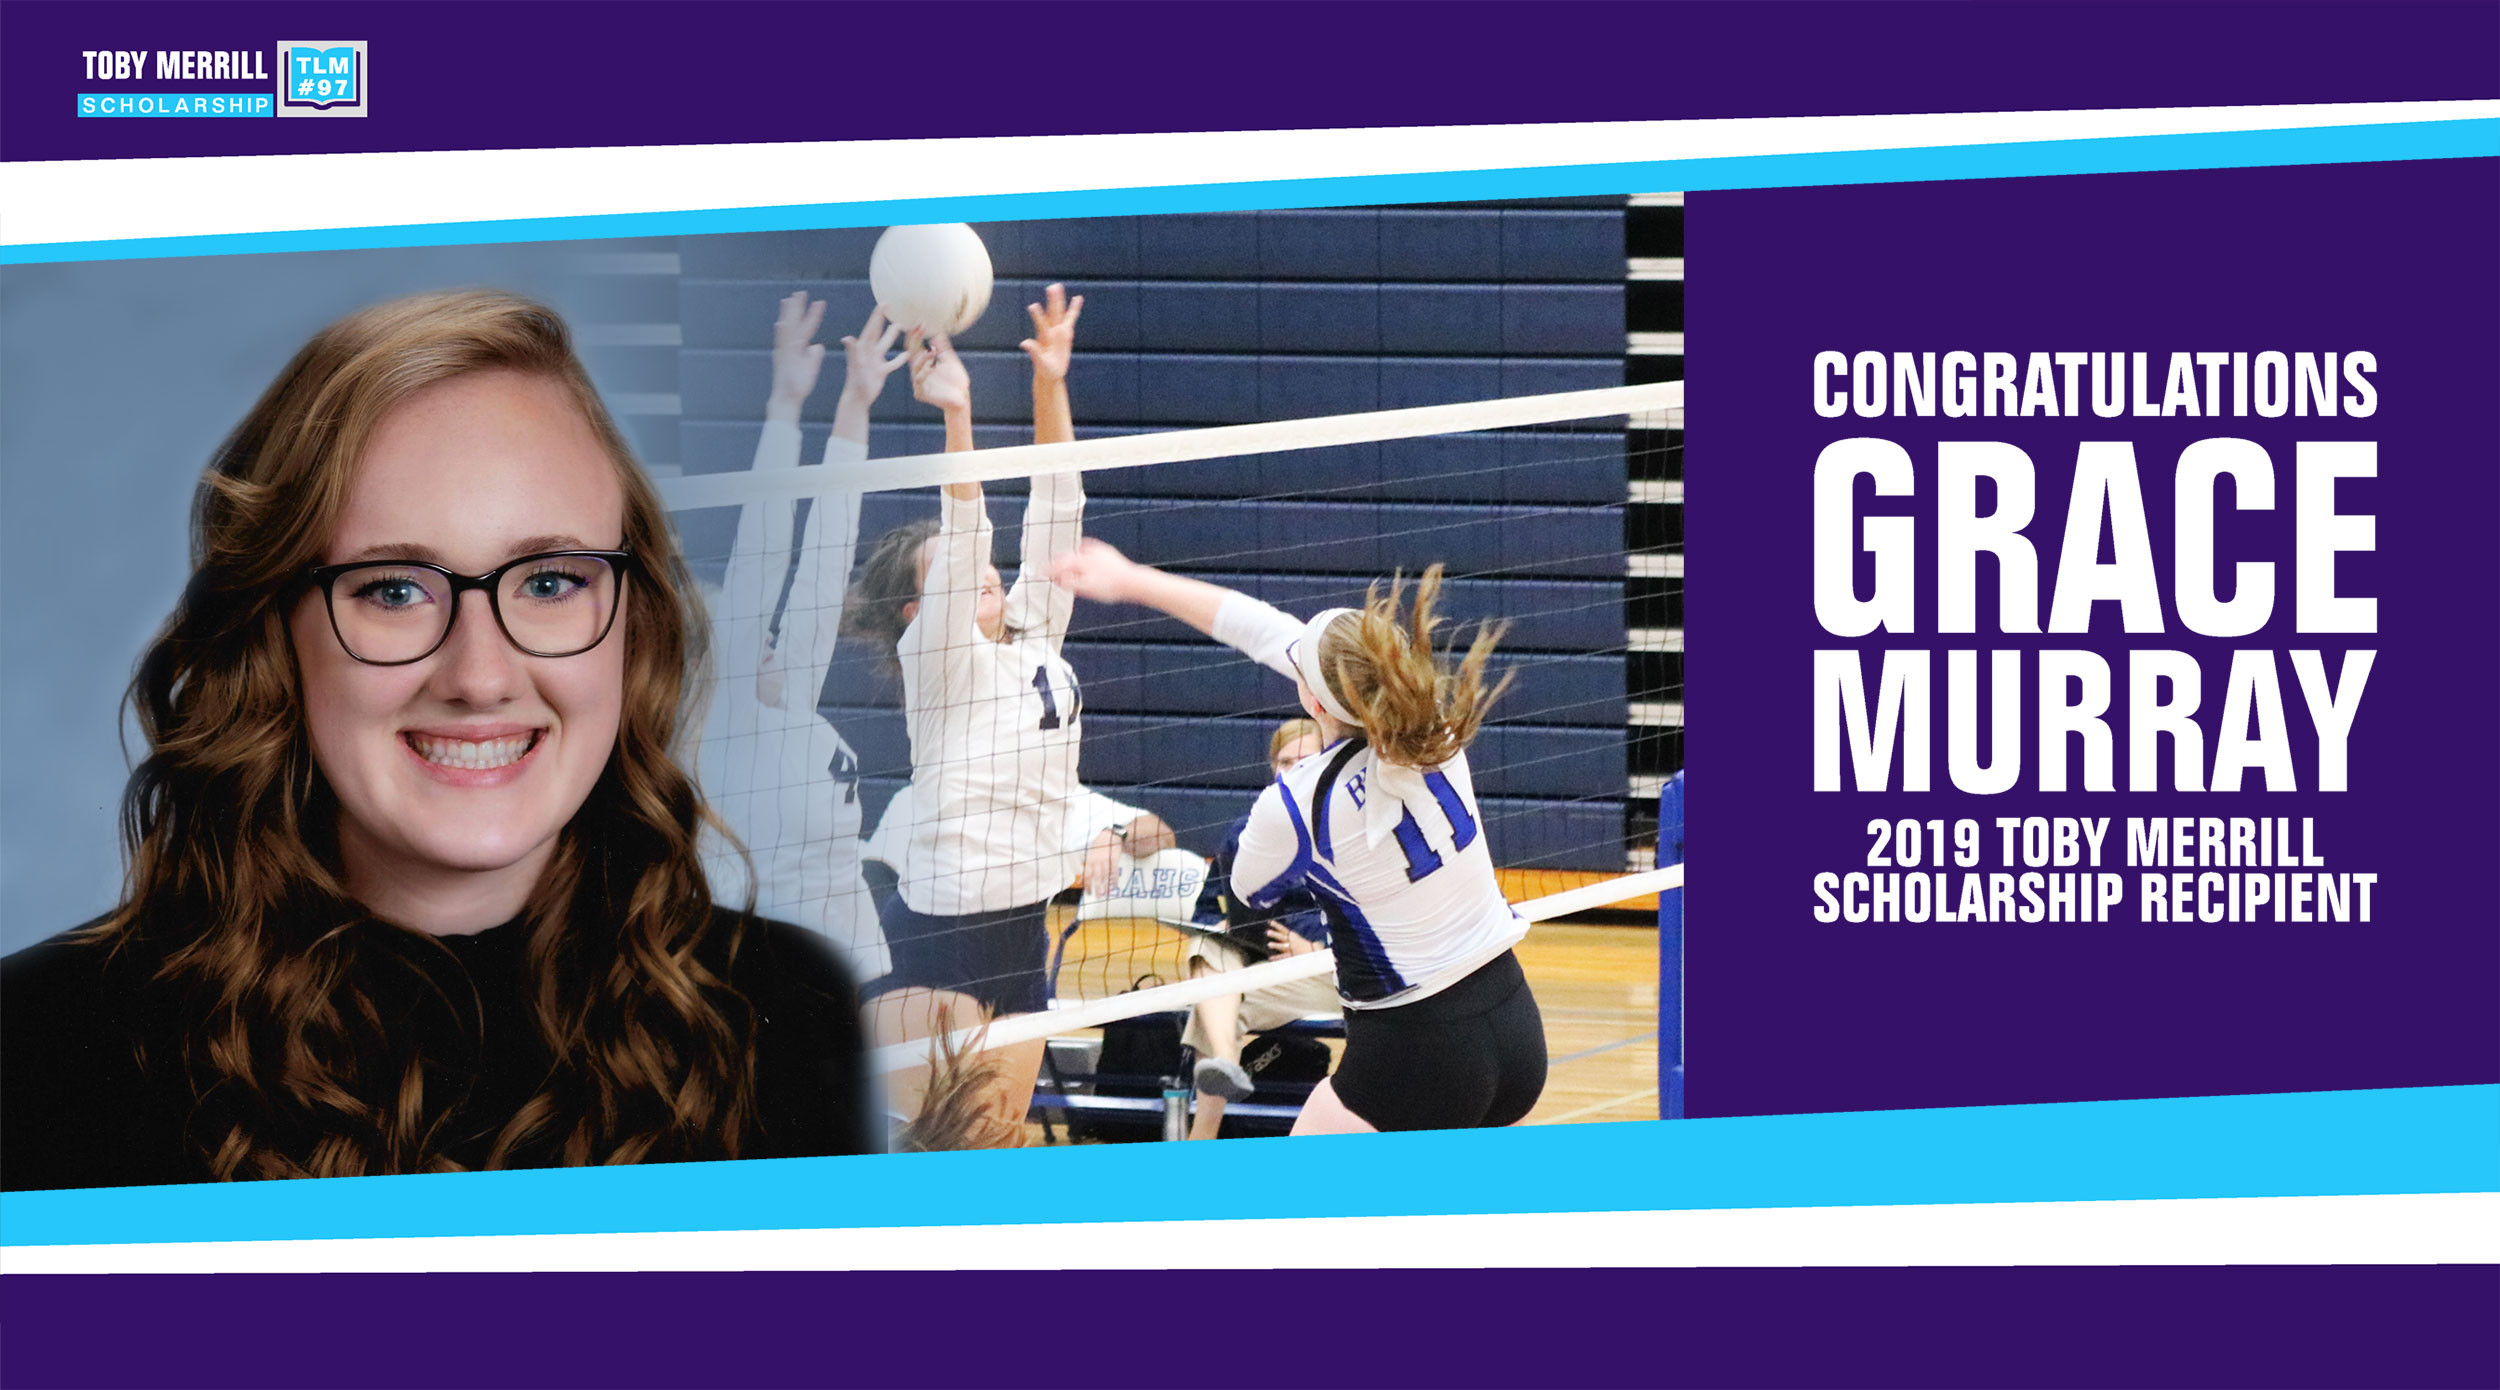 July 2019: Grace Murray is this Year's Toby Merrill Scholarship Winner! -